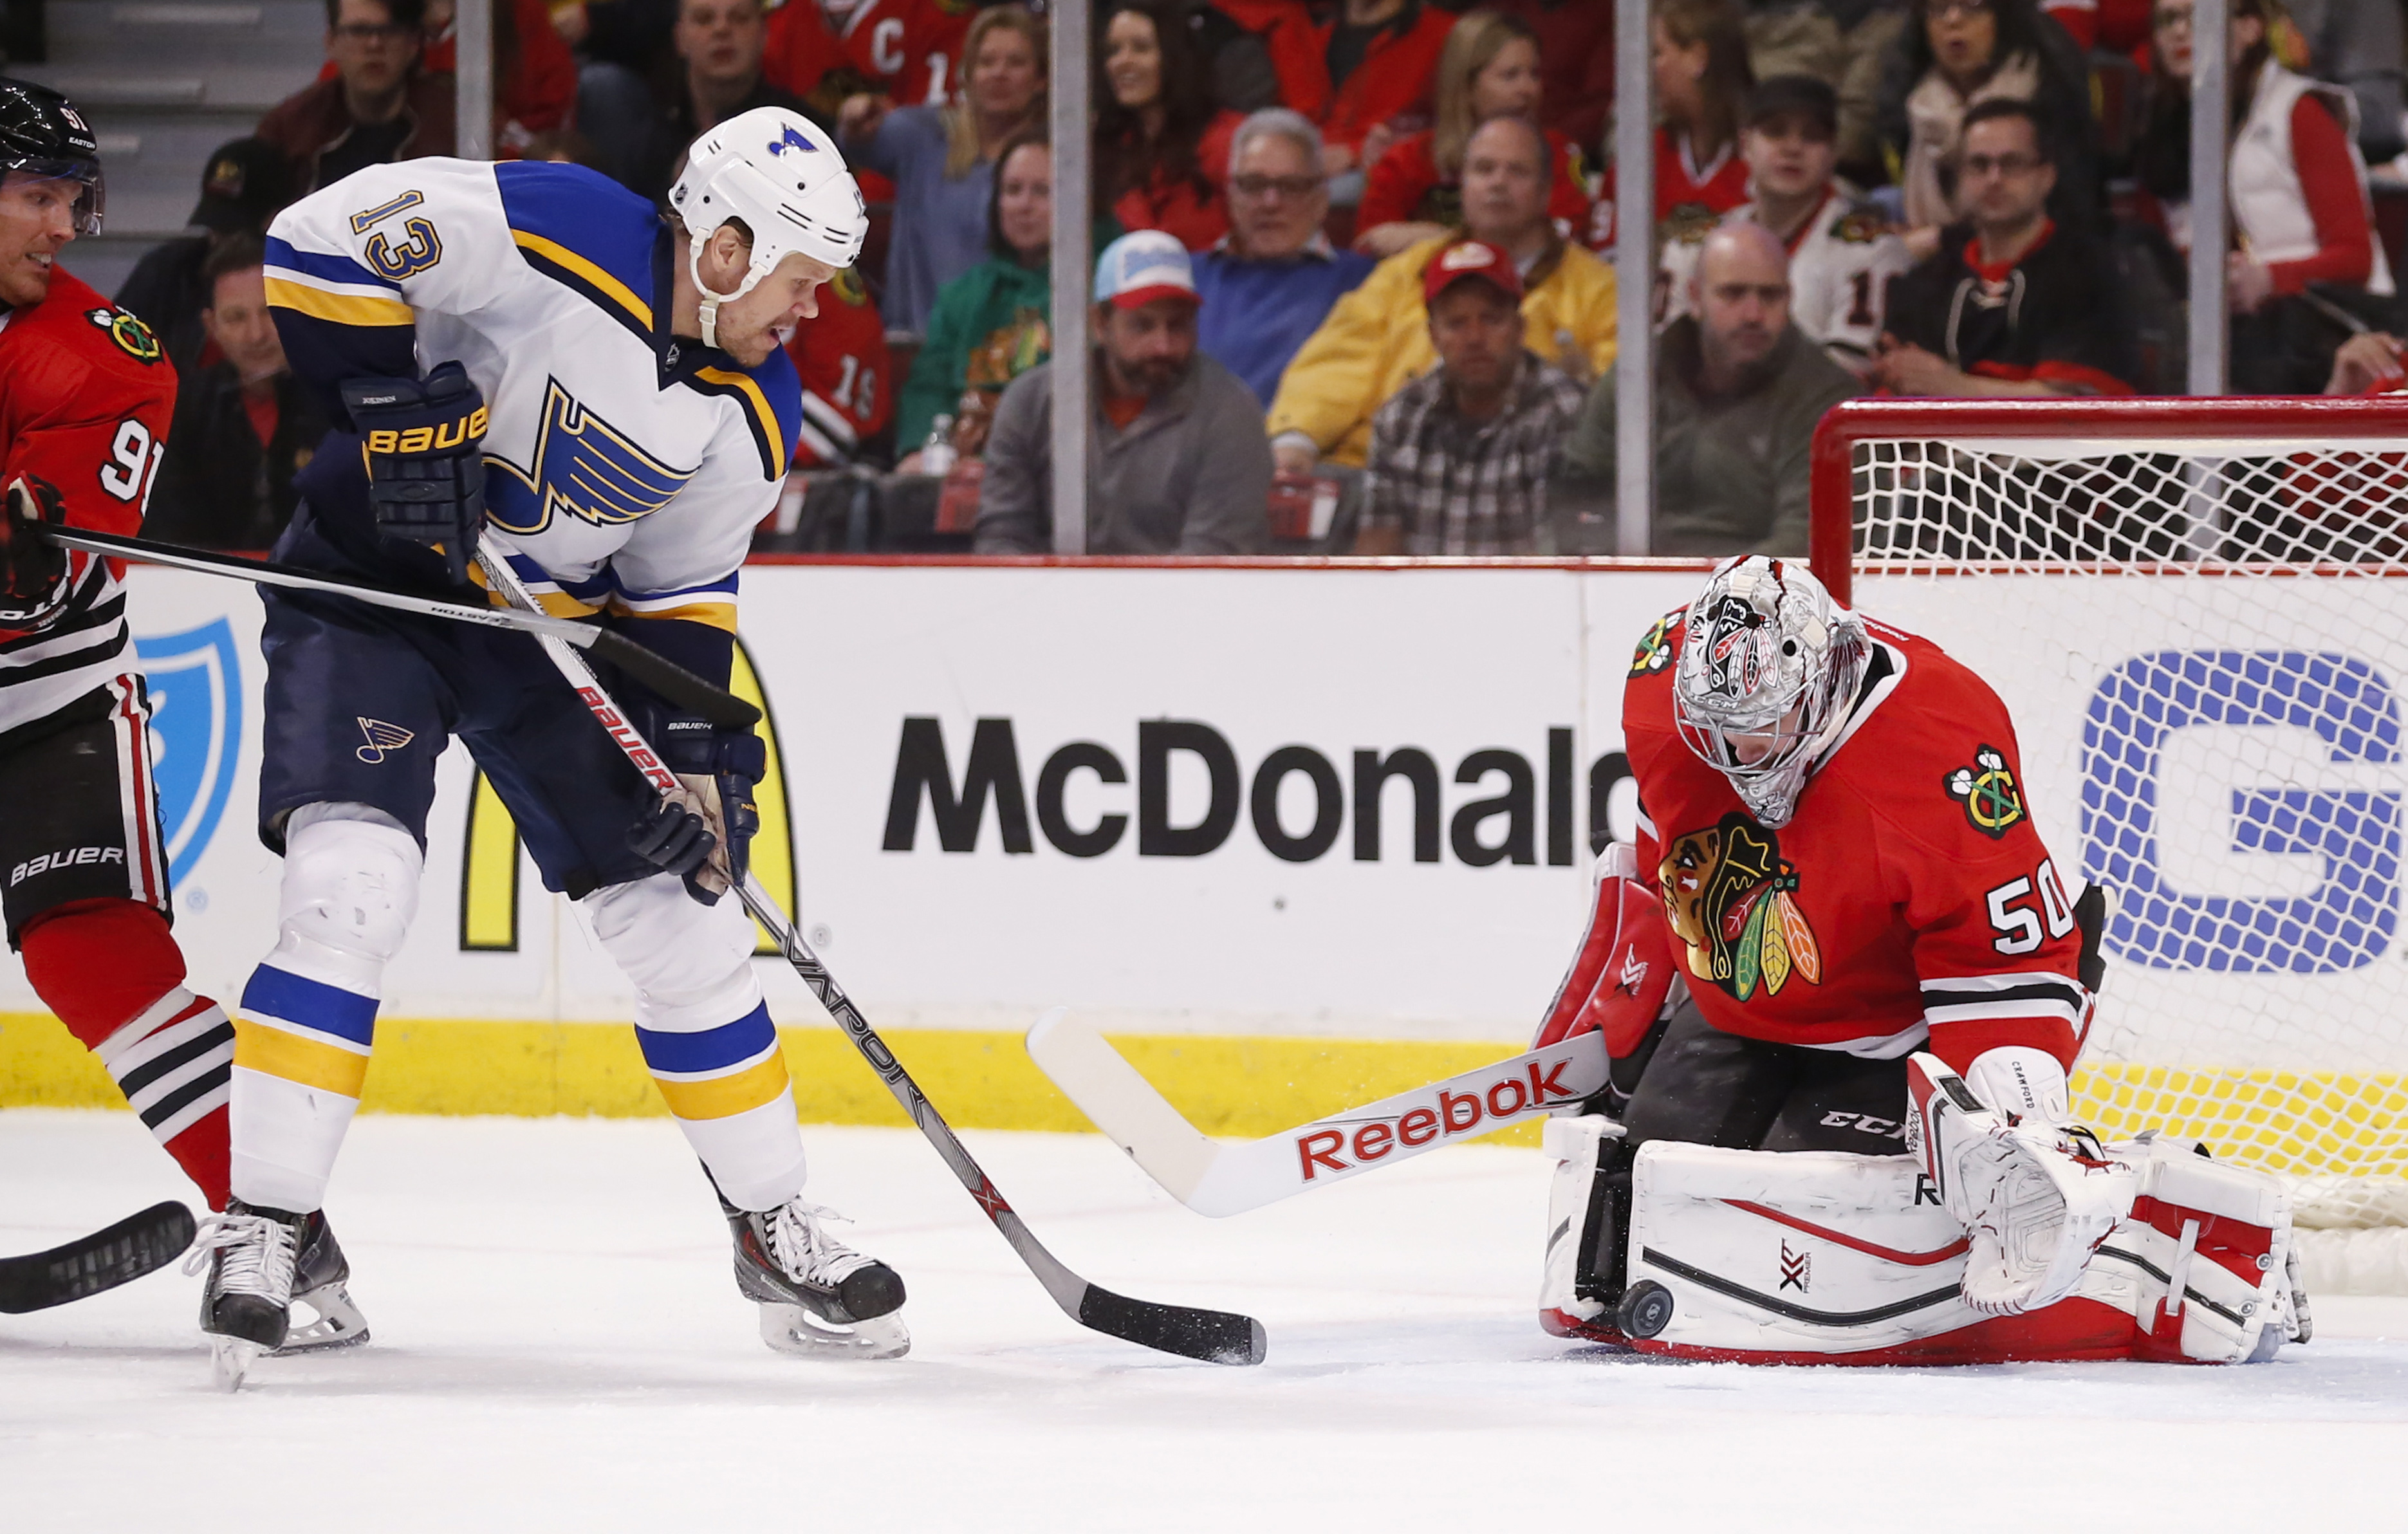 No. Seriously. The Blues should bring this guy back.